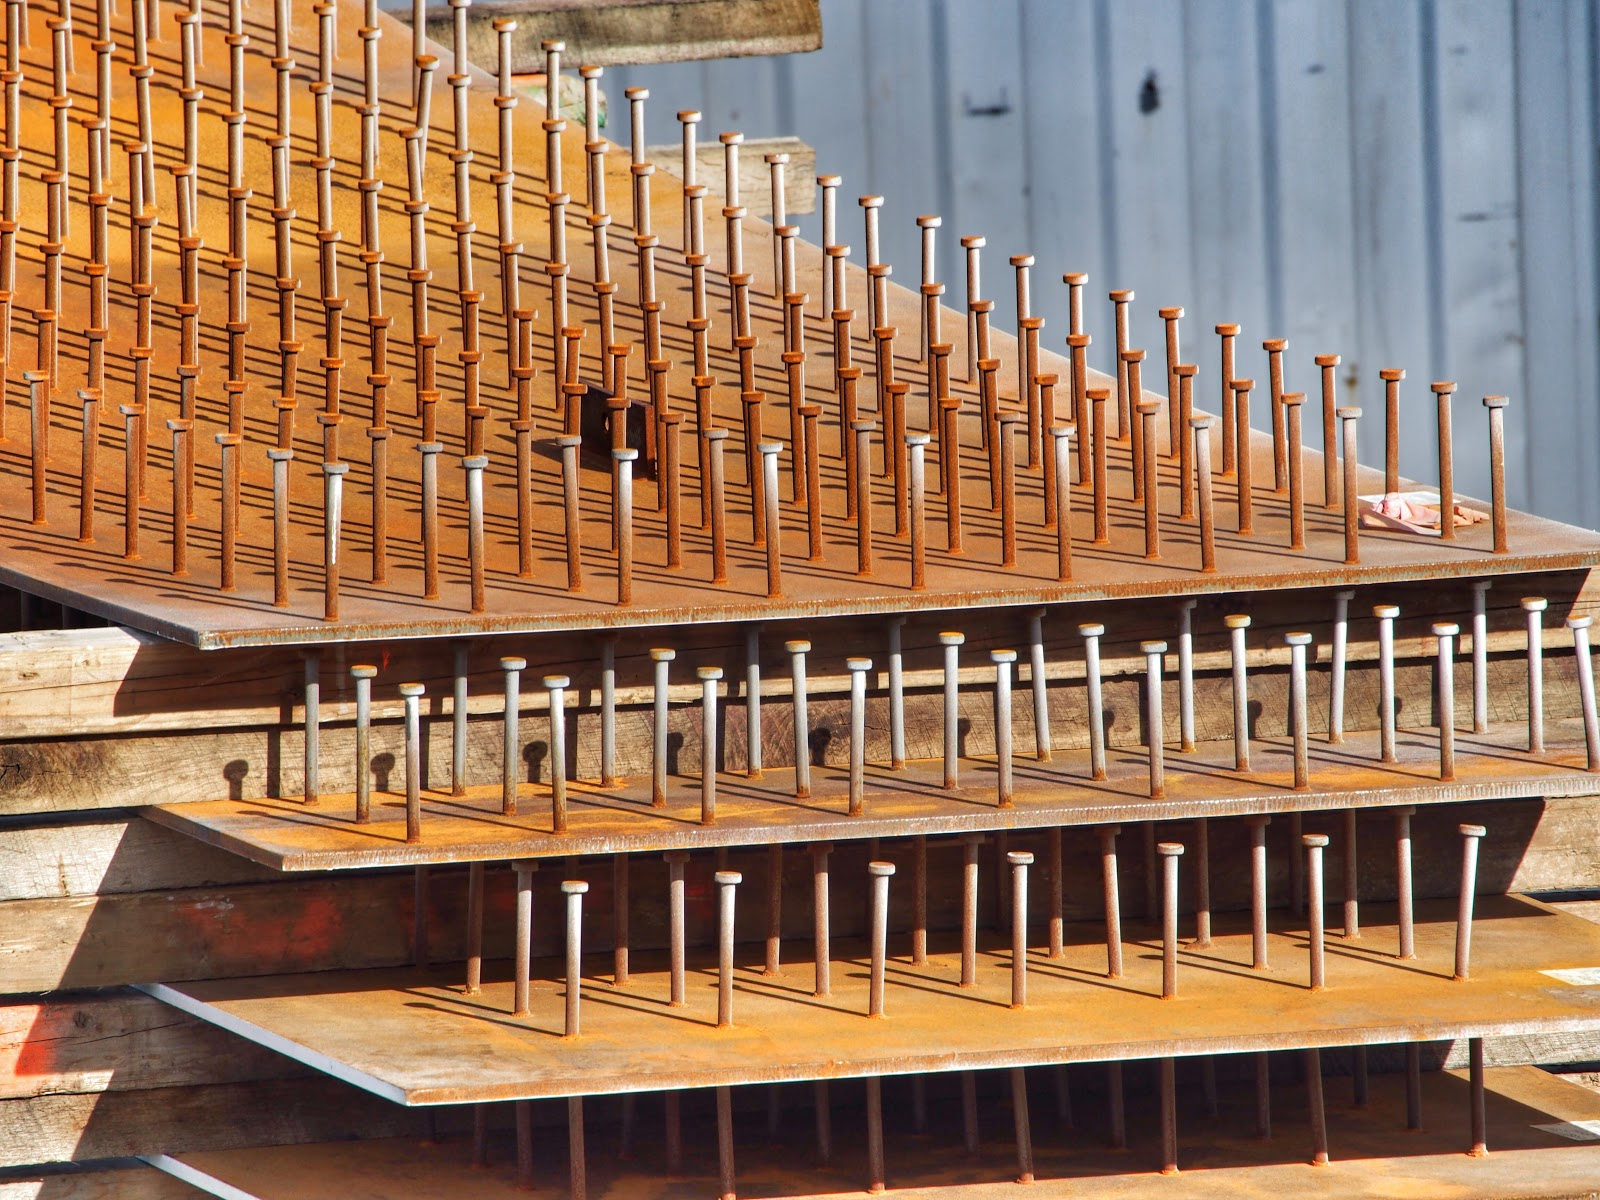 Nails in a Row #nailsinarow #construction #nyc #hudsonyards #steelplates #nails ©2014 Nancy Lundebjerg